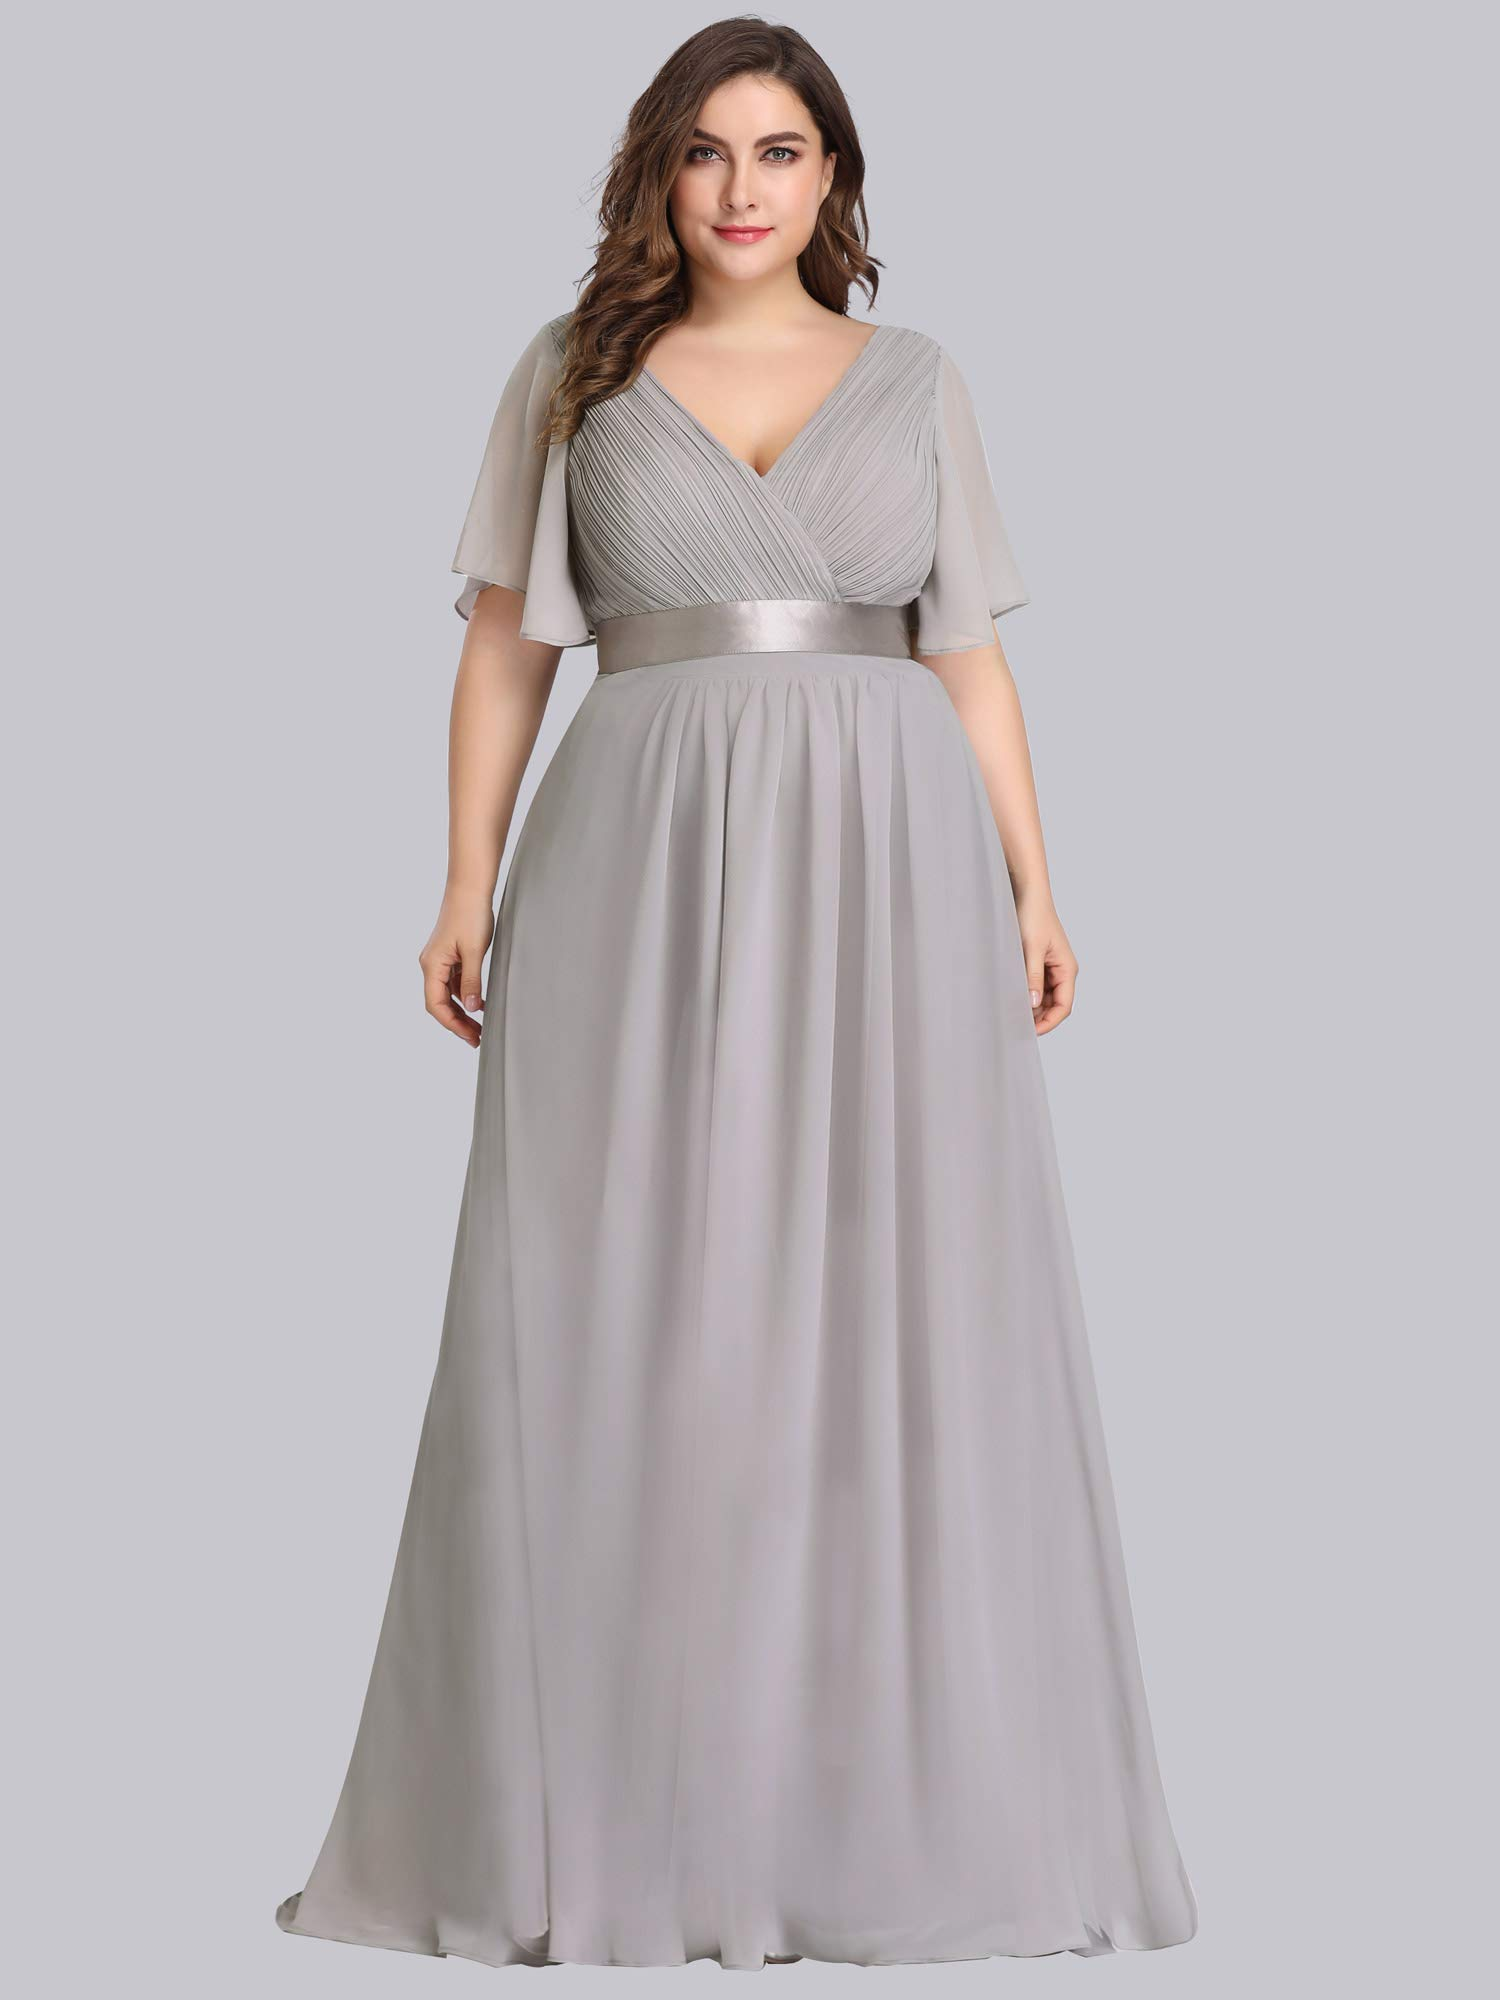 Alisapan Womens A-Line Bridesmaid Dress Plus Size Formal Evening Dresses  Grey US20